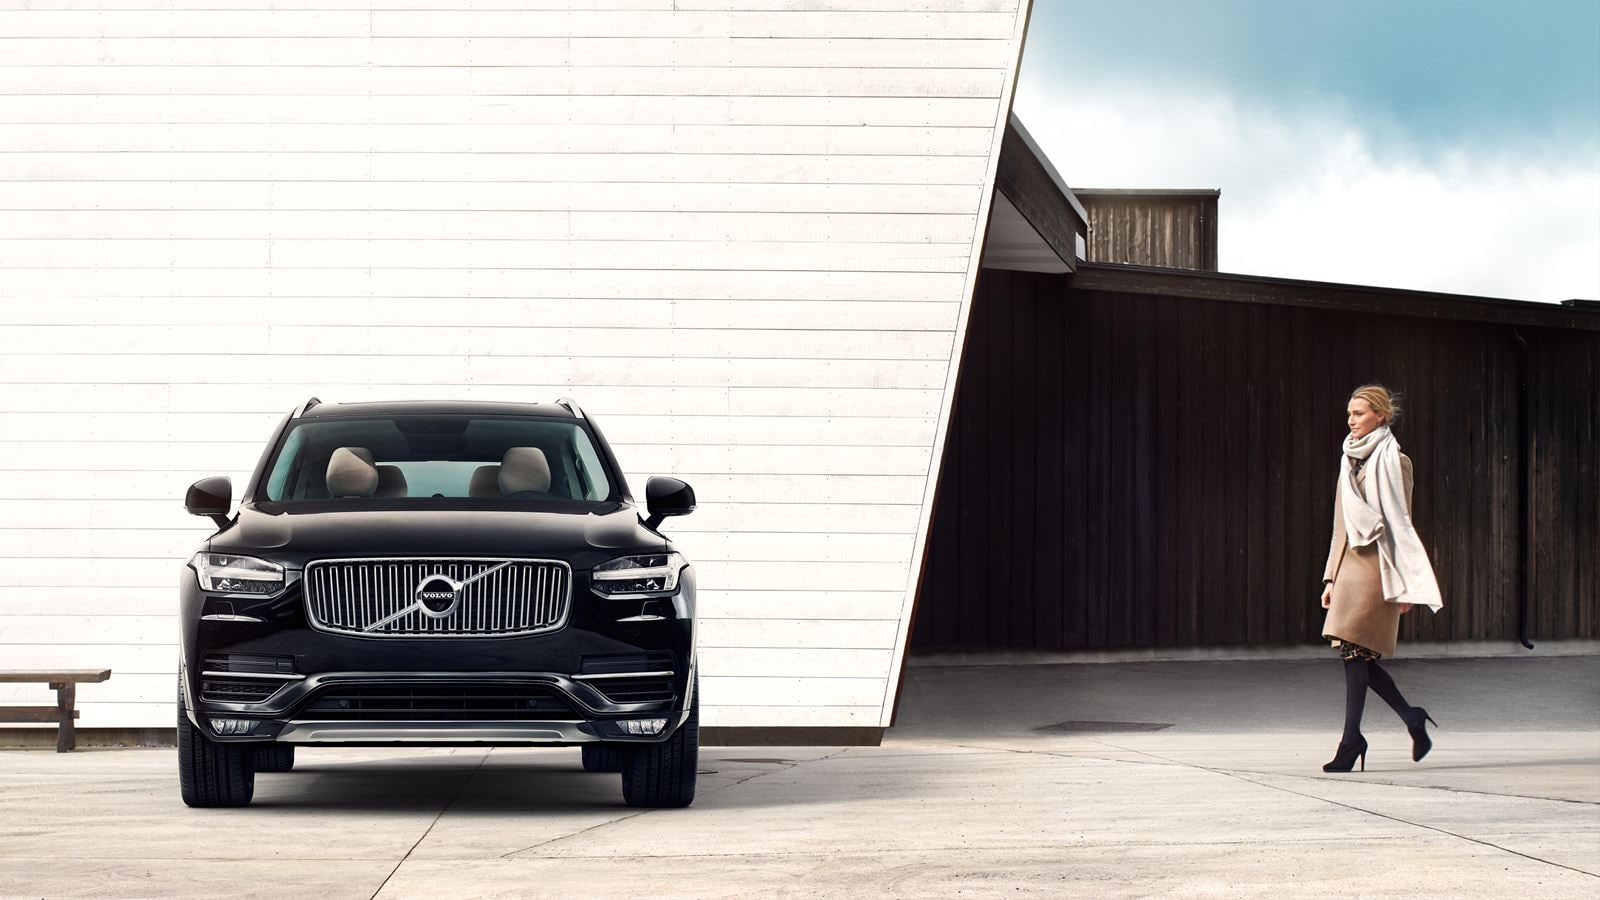 XC90 Exterior Front View